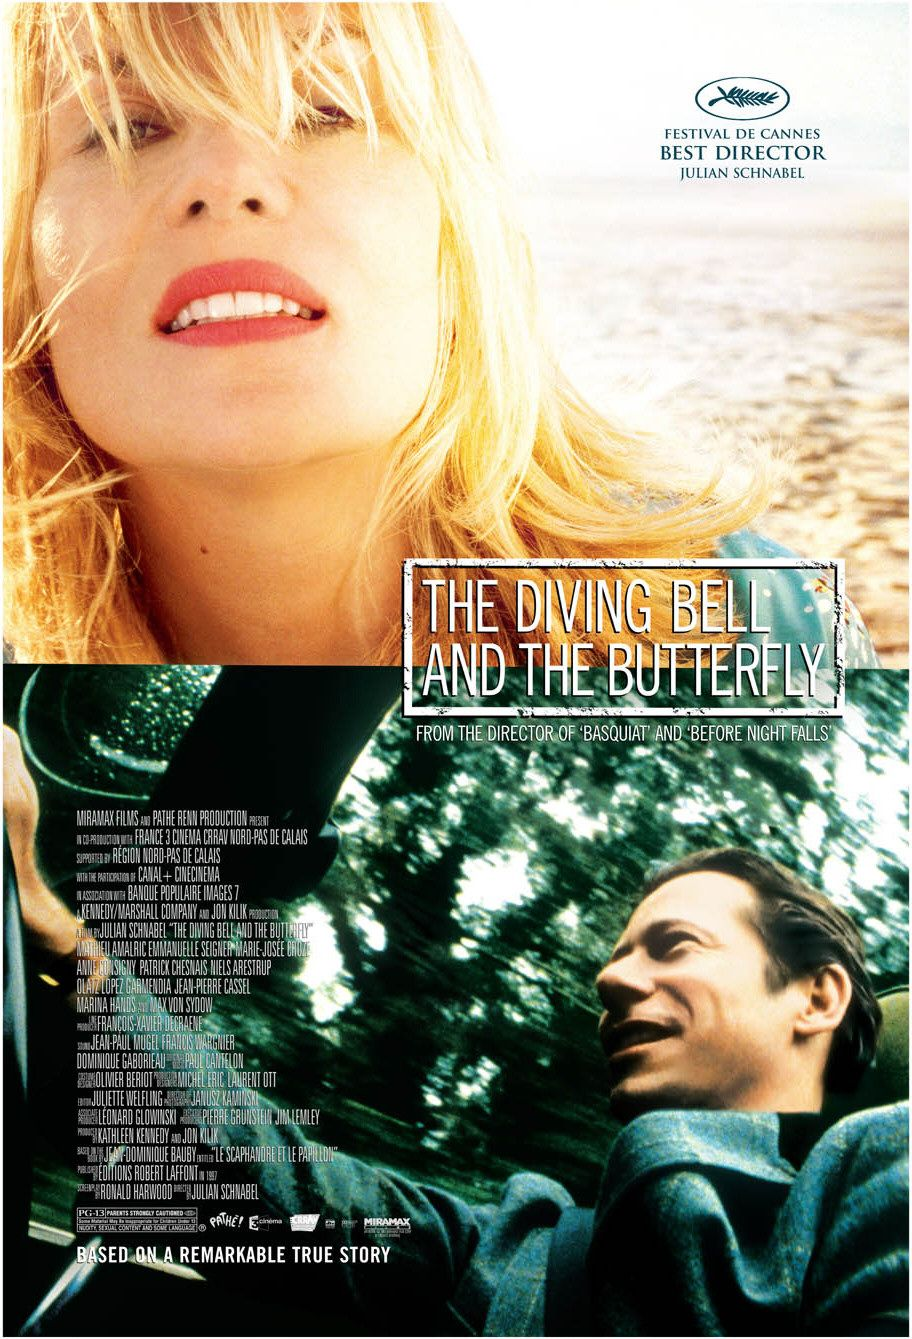 The Diving Bell and the Butterfly movie poster